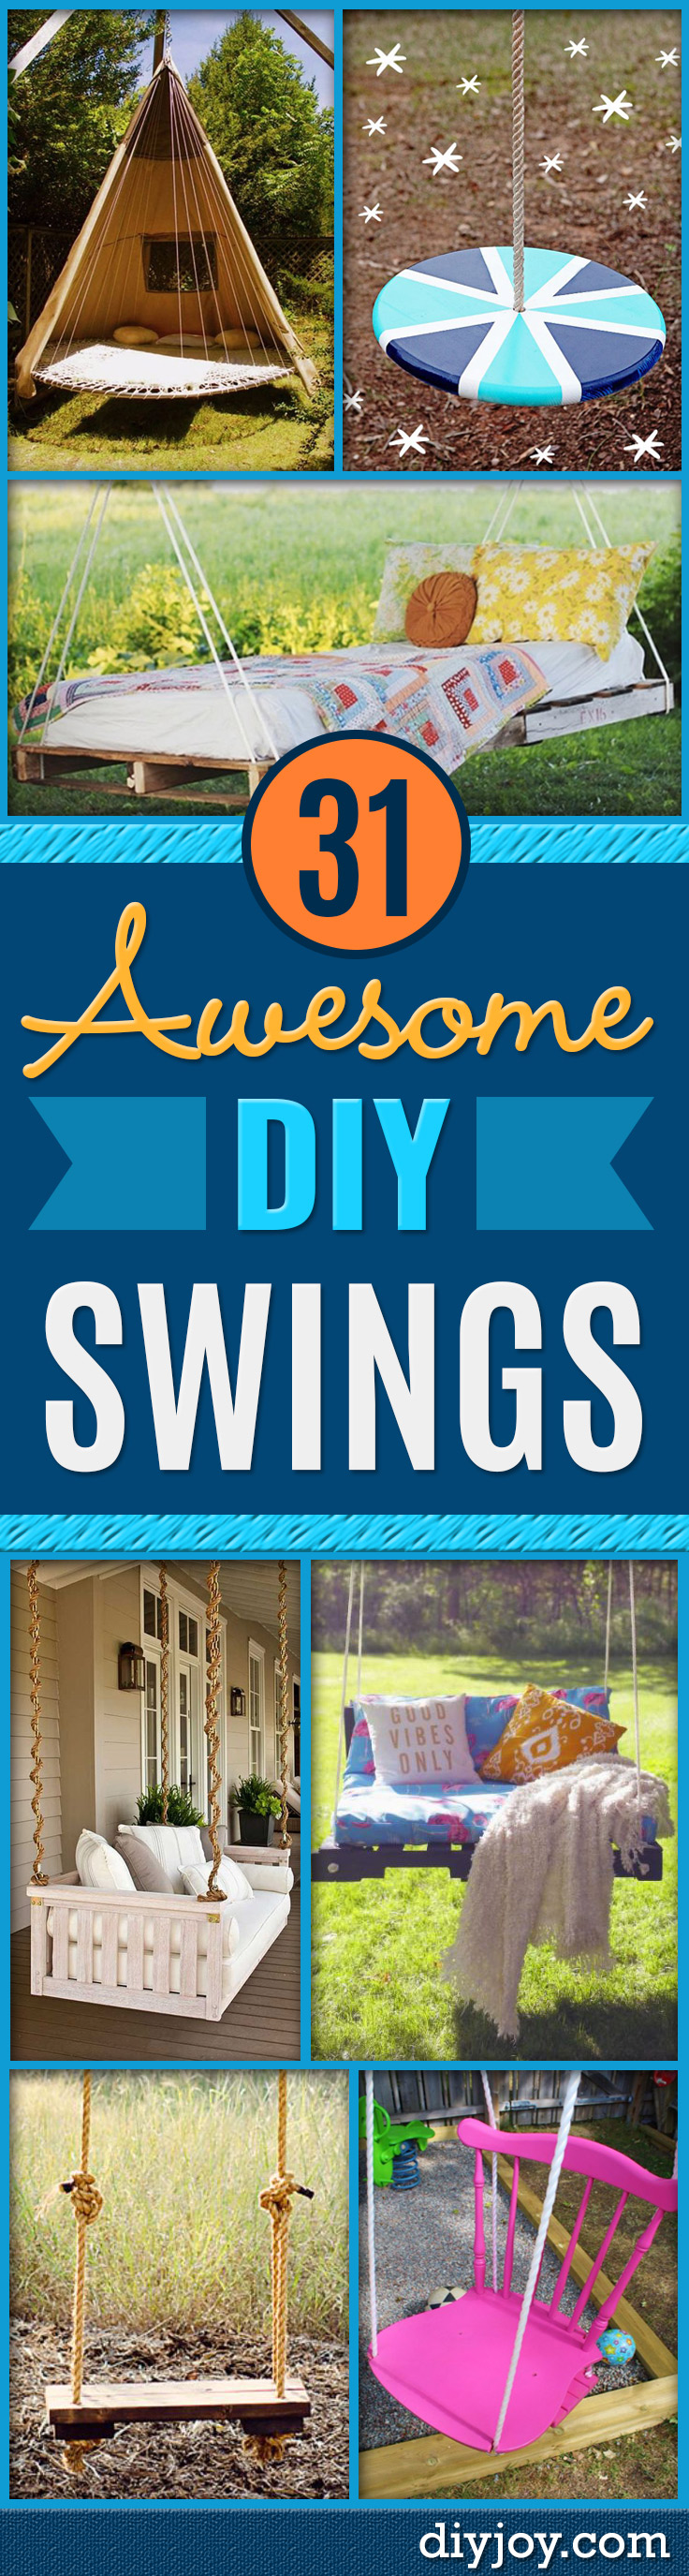 DIY Swings - Best Do It Yourself Swing Projects and Tutorials for Tire, Rocking, Hanging, Double Seat, Porch, Patio and Yard. Easy Ideas for Kids and Adults - Make The Best Backyard Ever This Summer With These Awesome Seating and Play Ideas for Swings - Creative Home Decor and Crafts by DIY JOY http://diyjoy.com/diy-swings